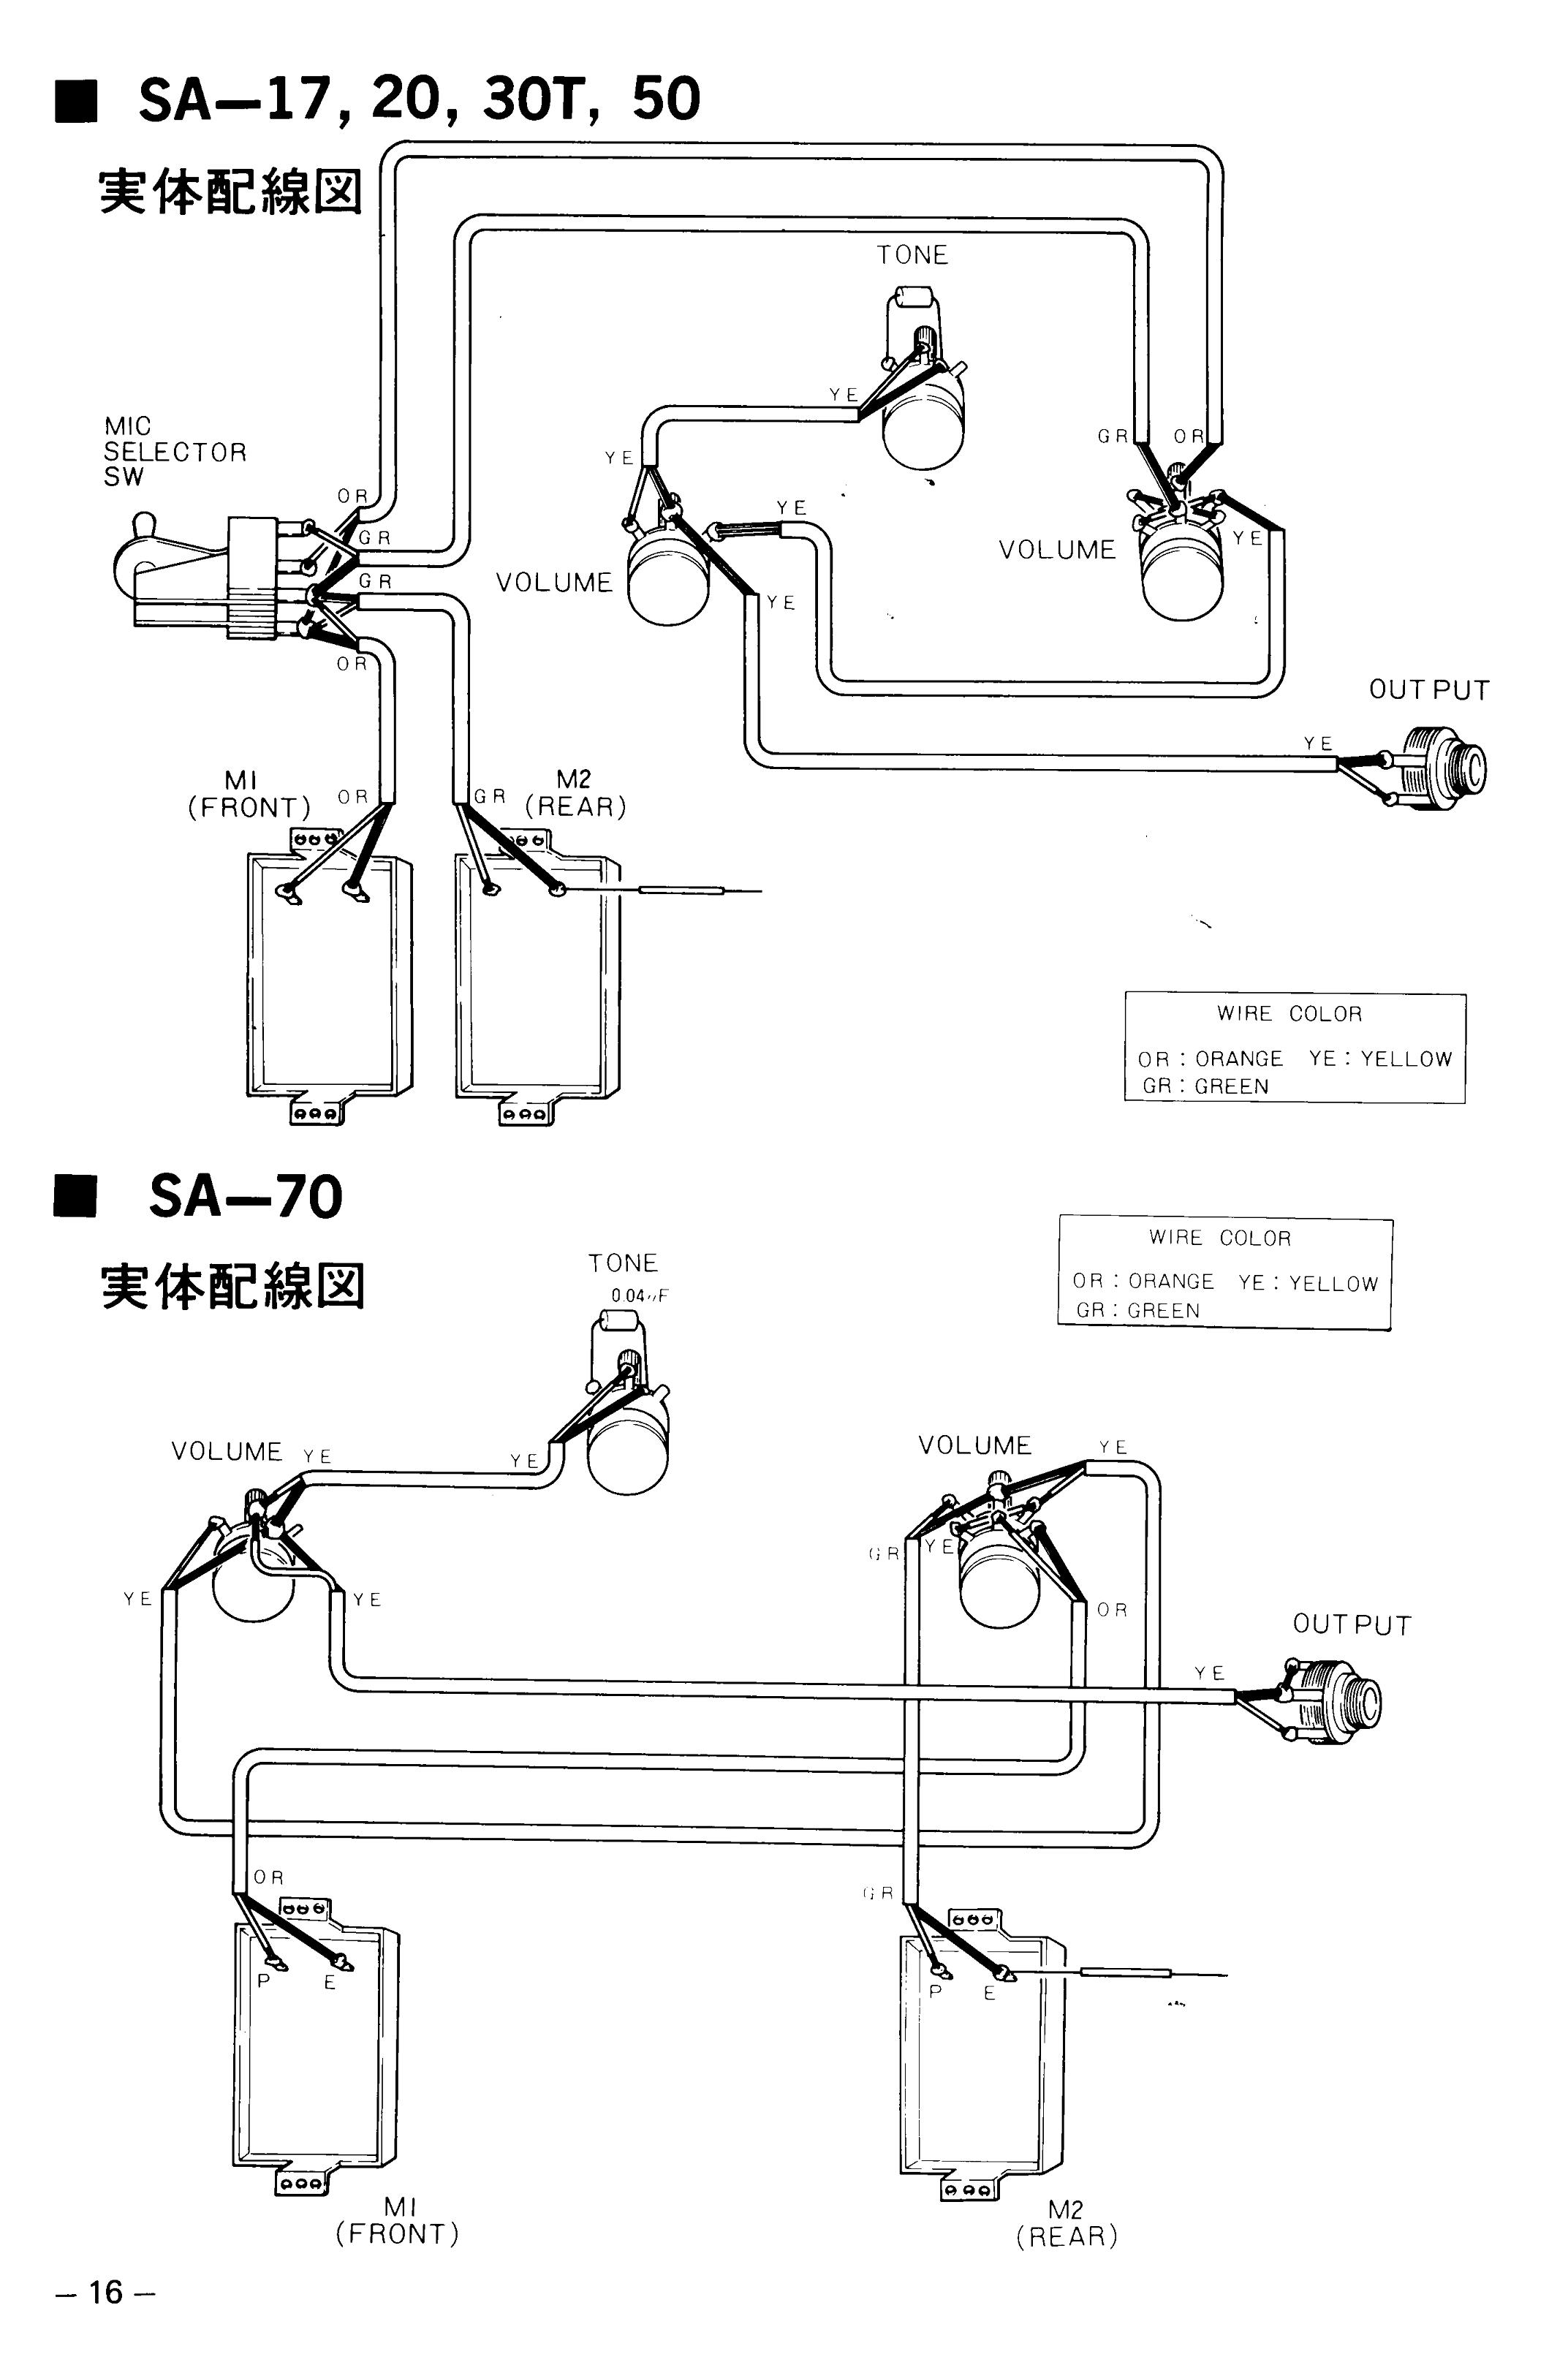 Wiring Diagram Yamaha Fz16 Blaster Harness Million Motorcycle Diagrams Dt View Large